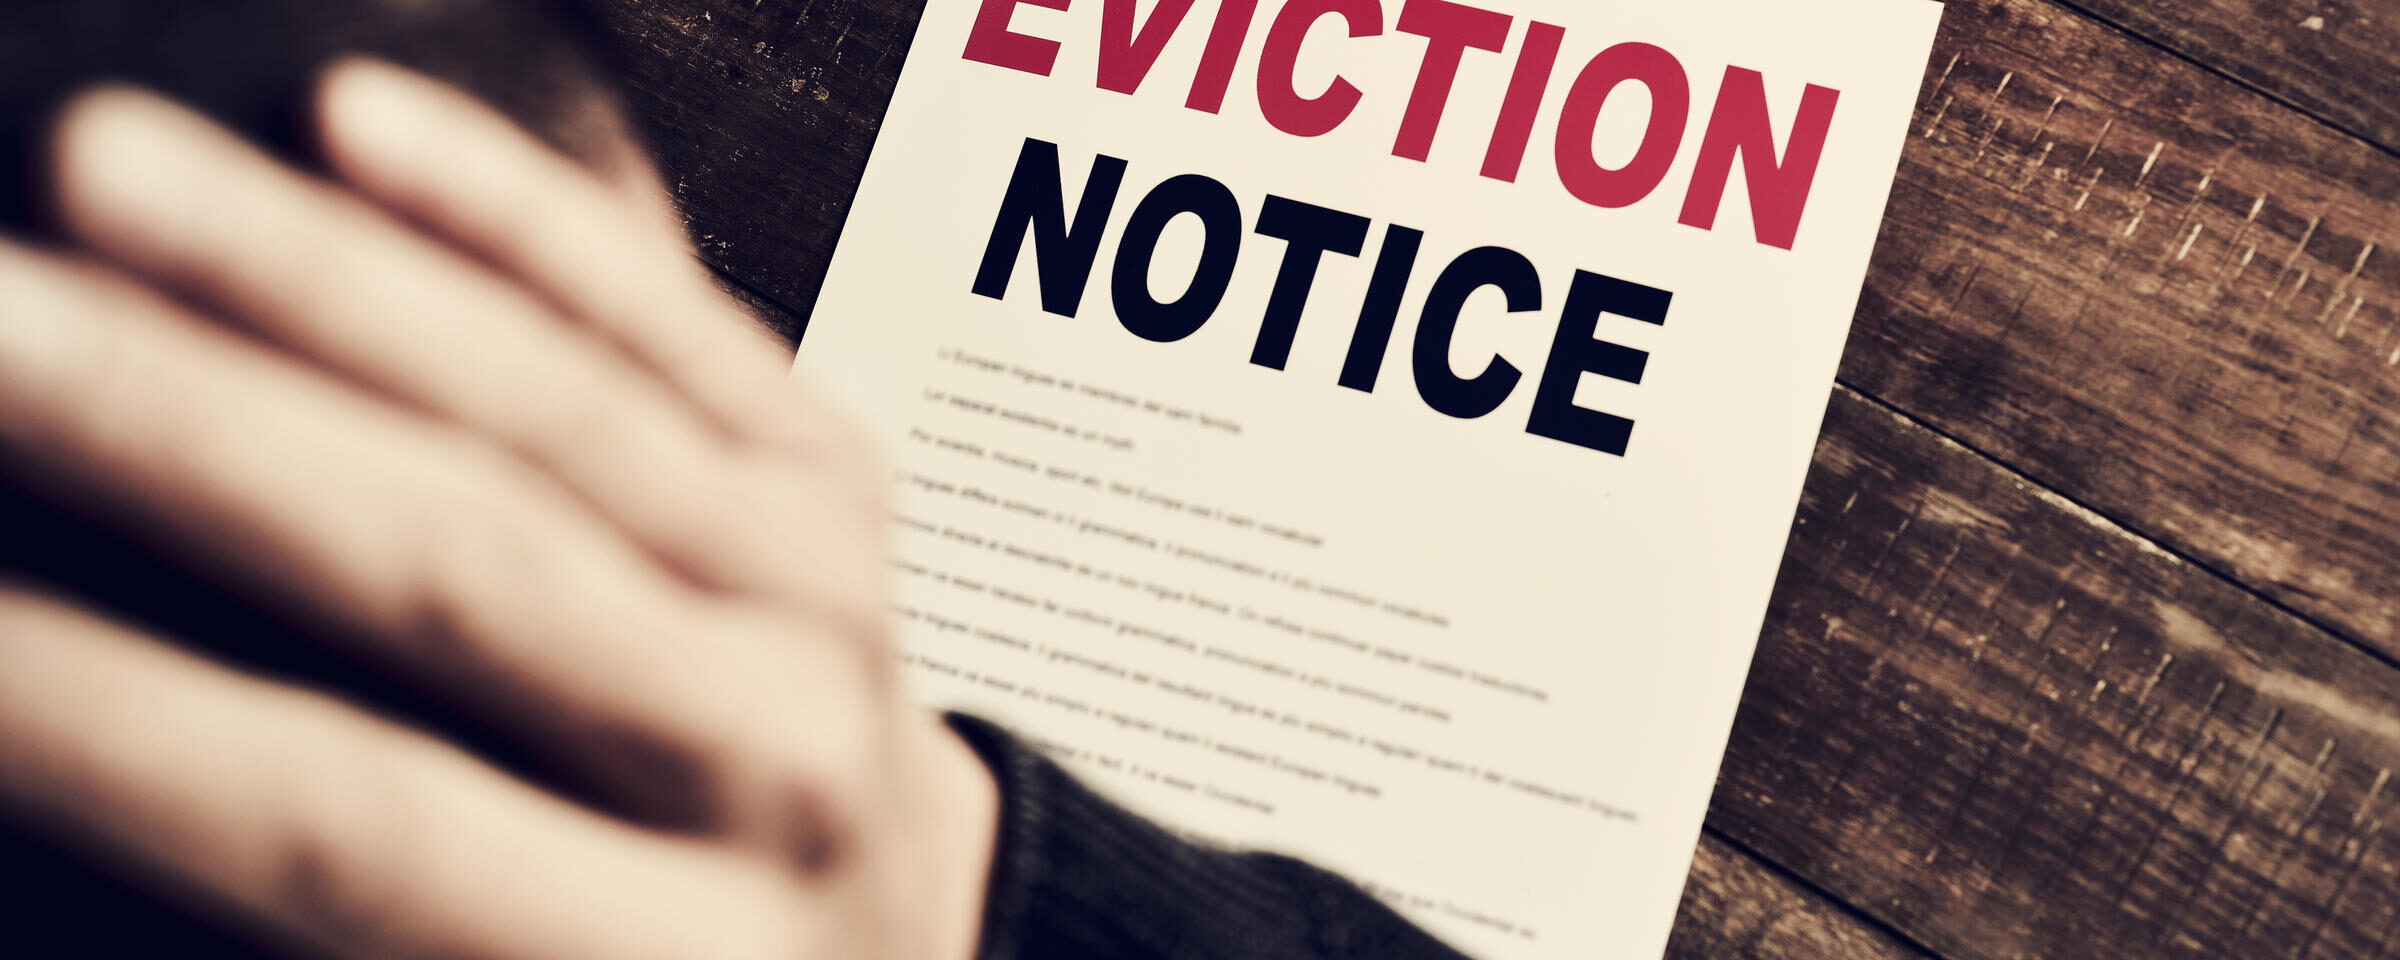 Rent or Eviction